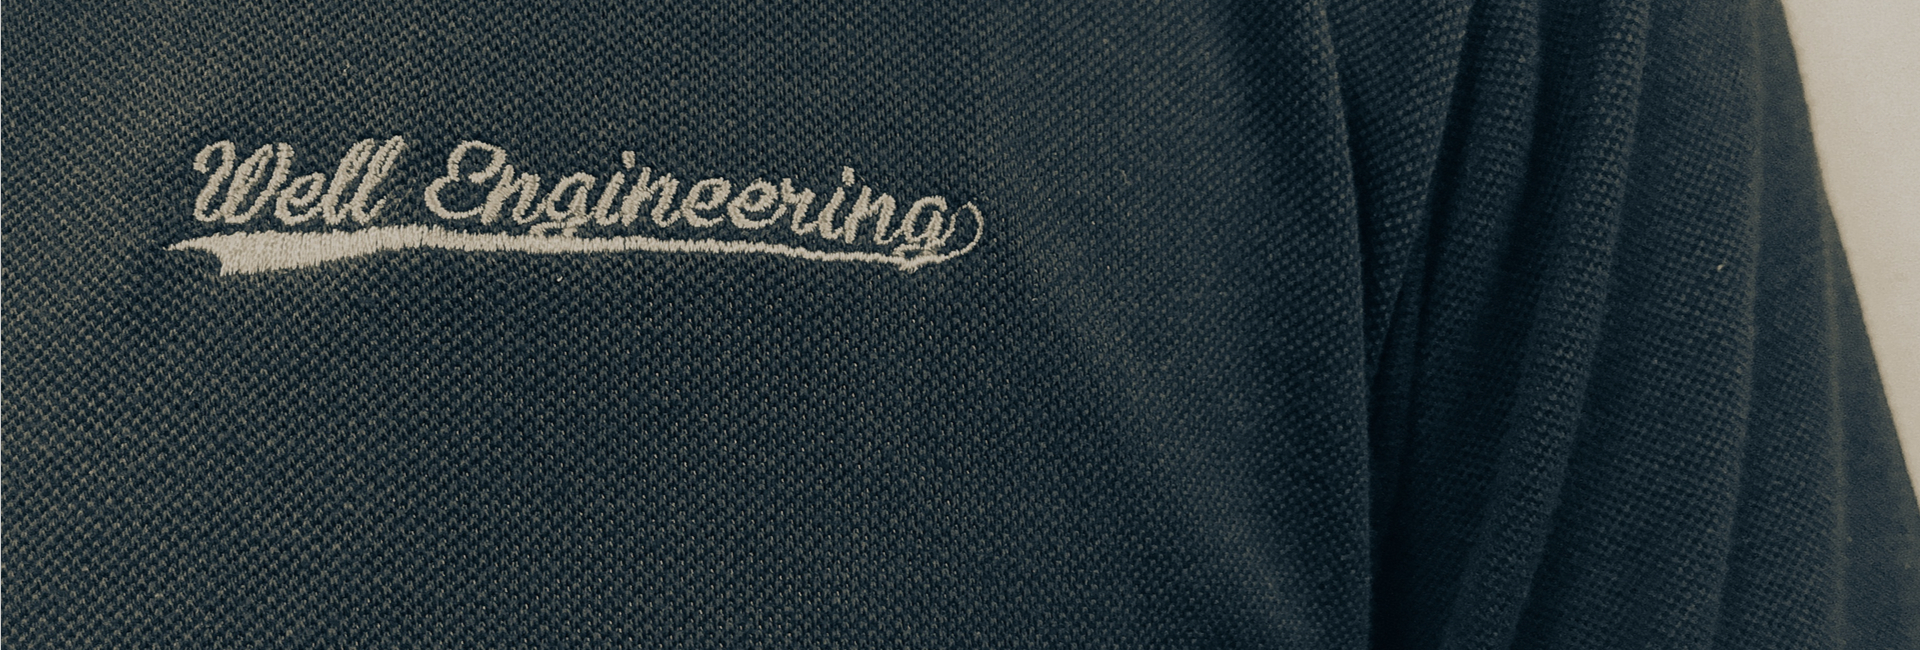 Do you need embroidered logo workwear or printed T-shirts for your staff?